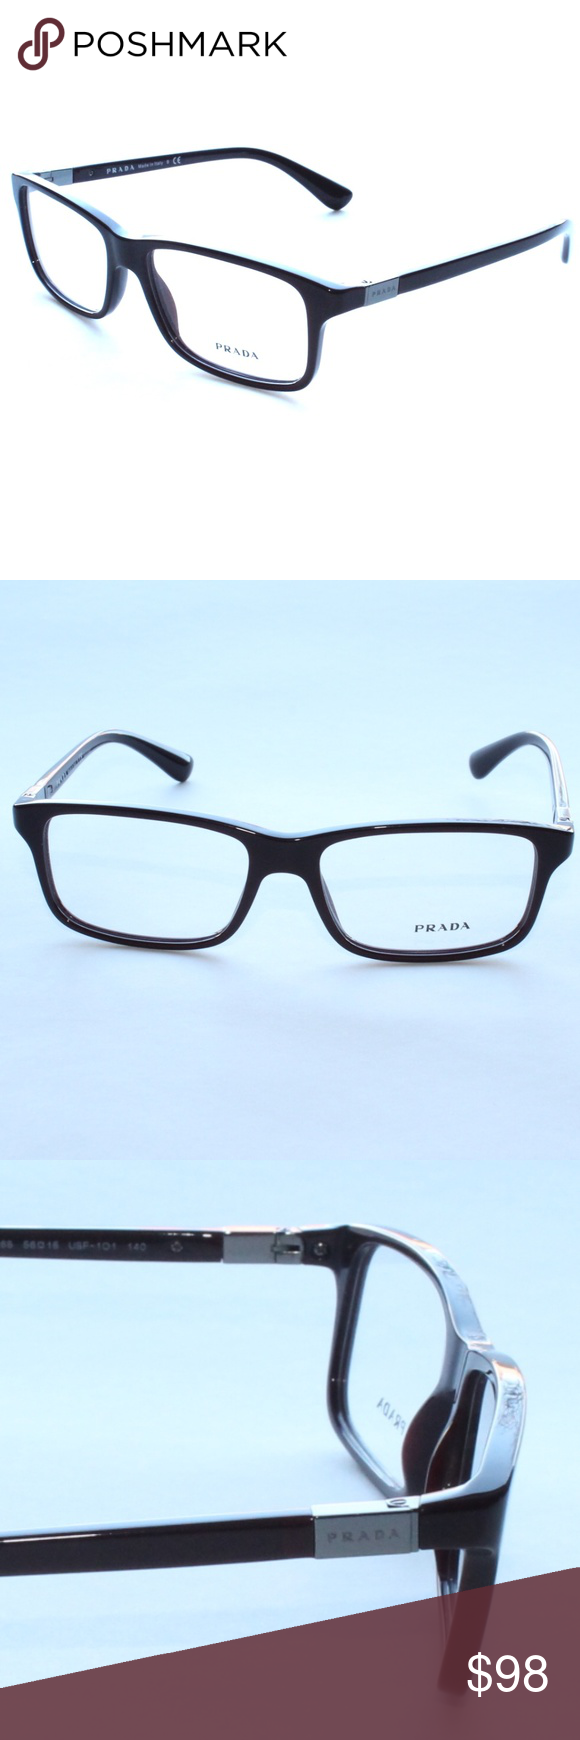 1e601ce034 Prada Eyeglasses VPR 06s 56 16 USF-101 Brand New 100% authentic Prada